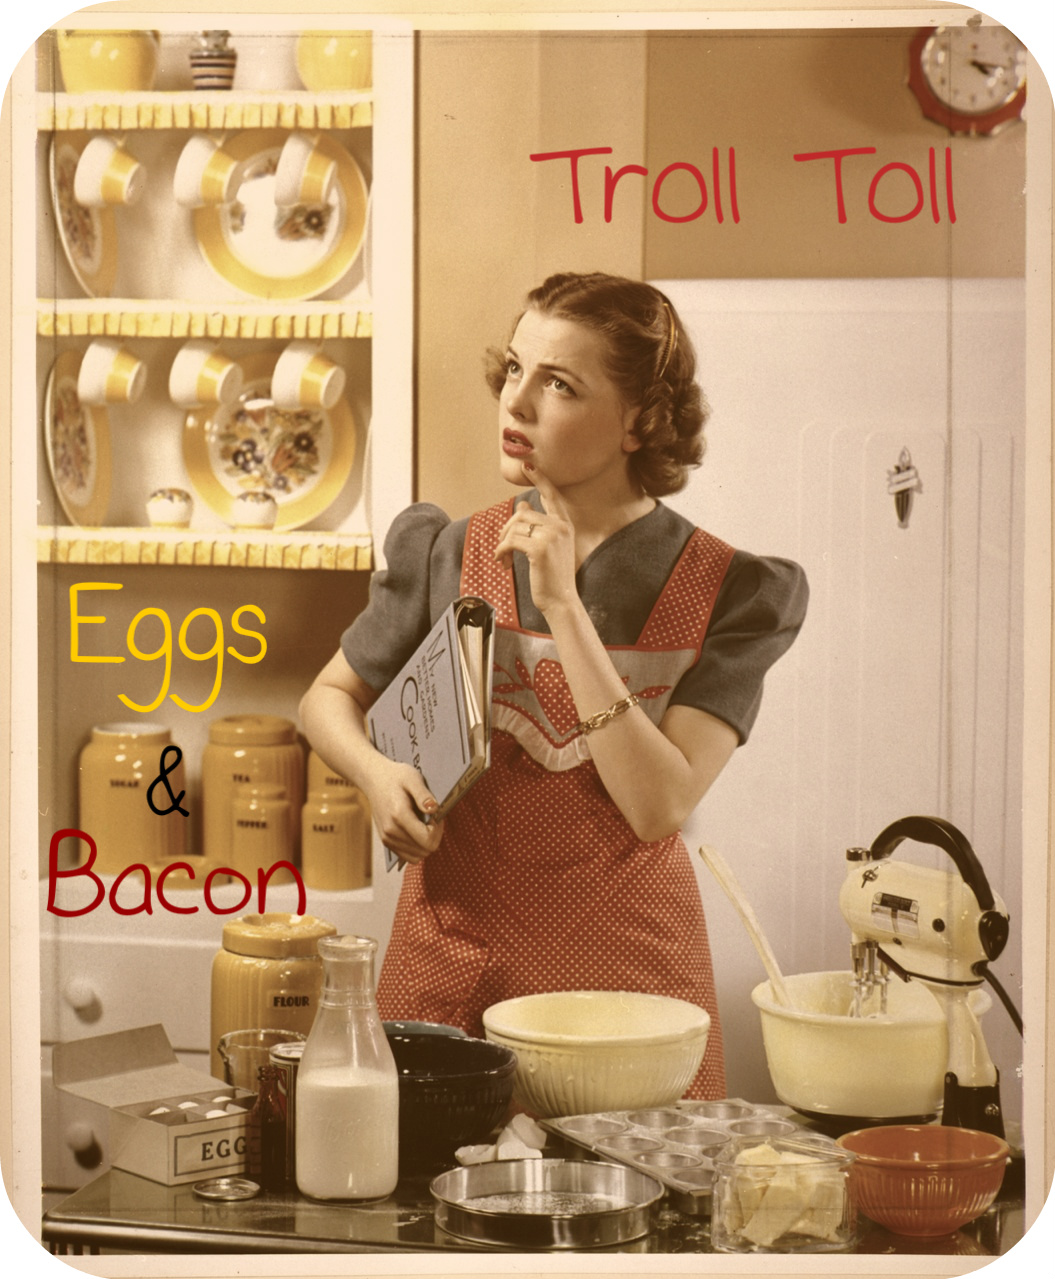 Troll Toll – Eggs & Bacon